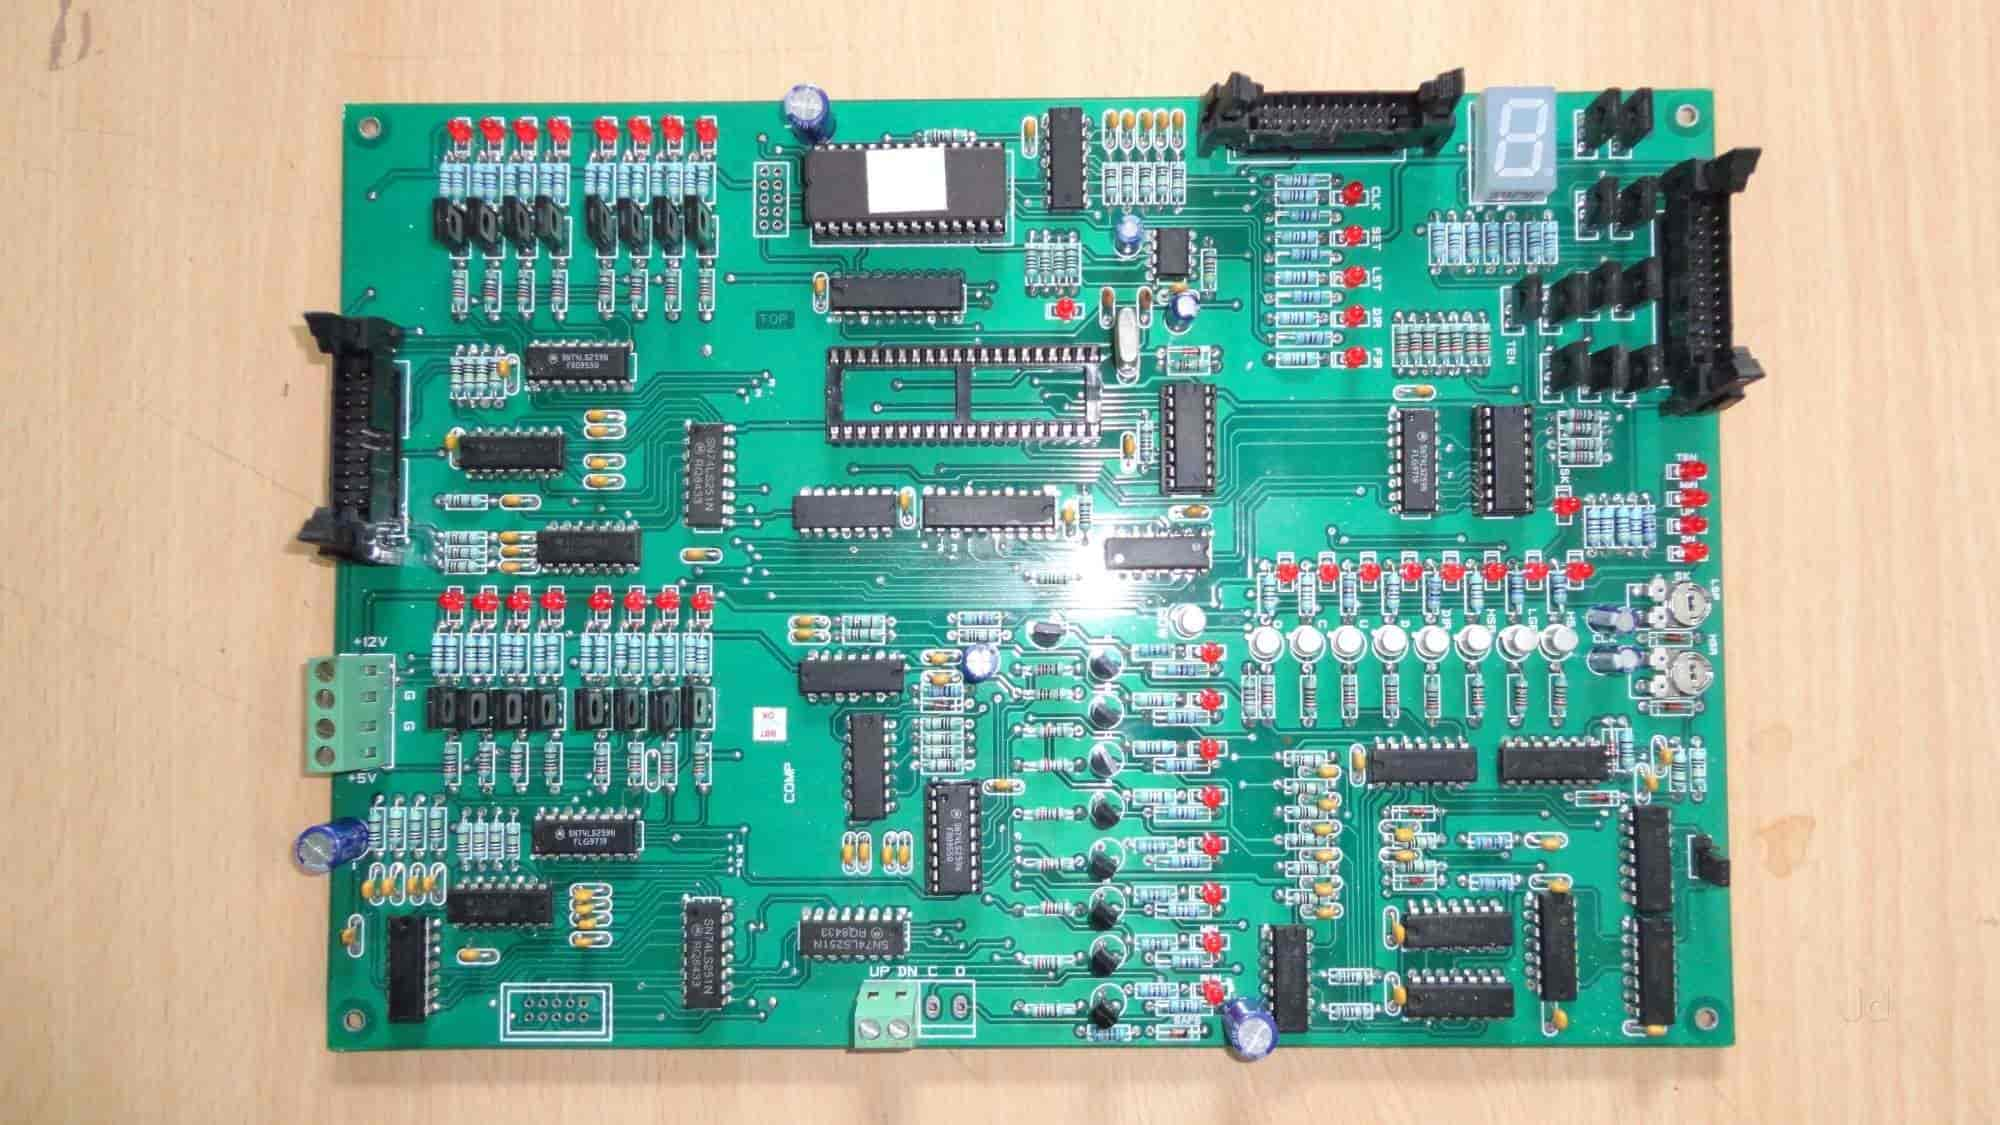 Bright Teck Power Systems Tirusulam Printed Circuit Board Assembly Manufacture Ourpcb Manufacturers In Chennai Justdial